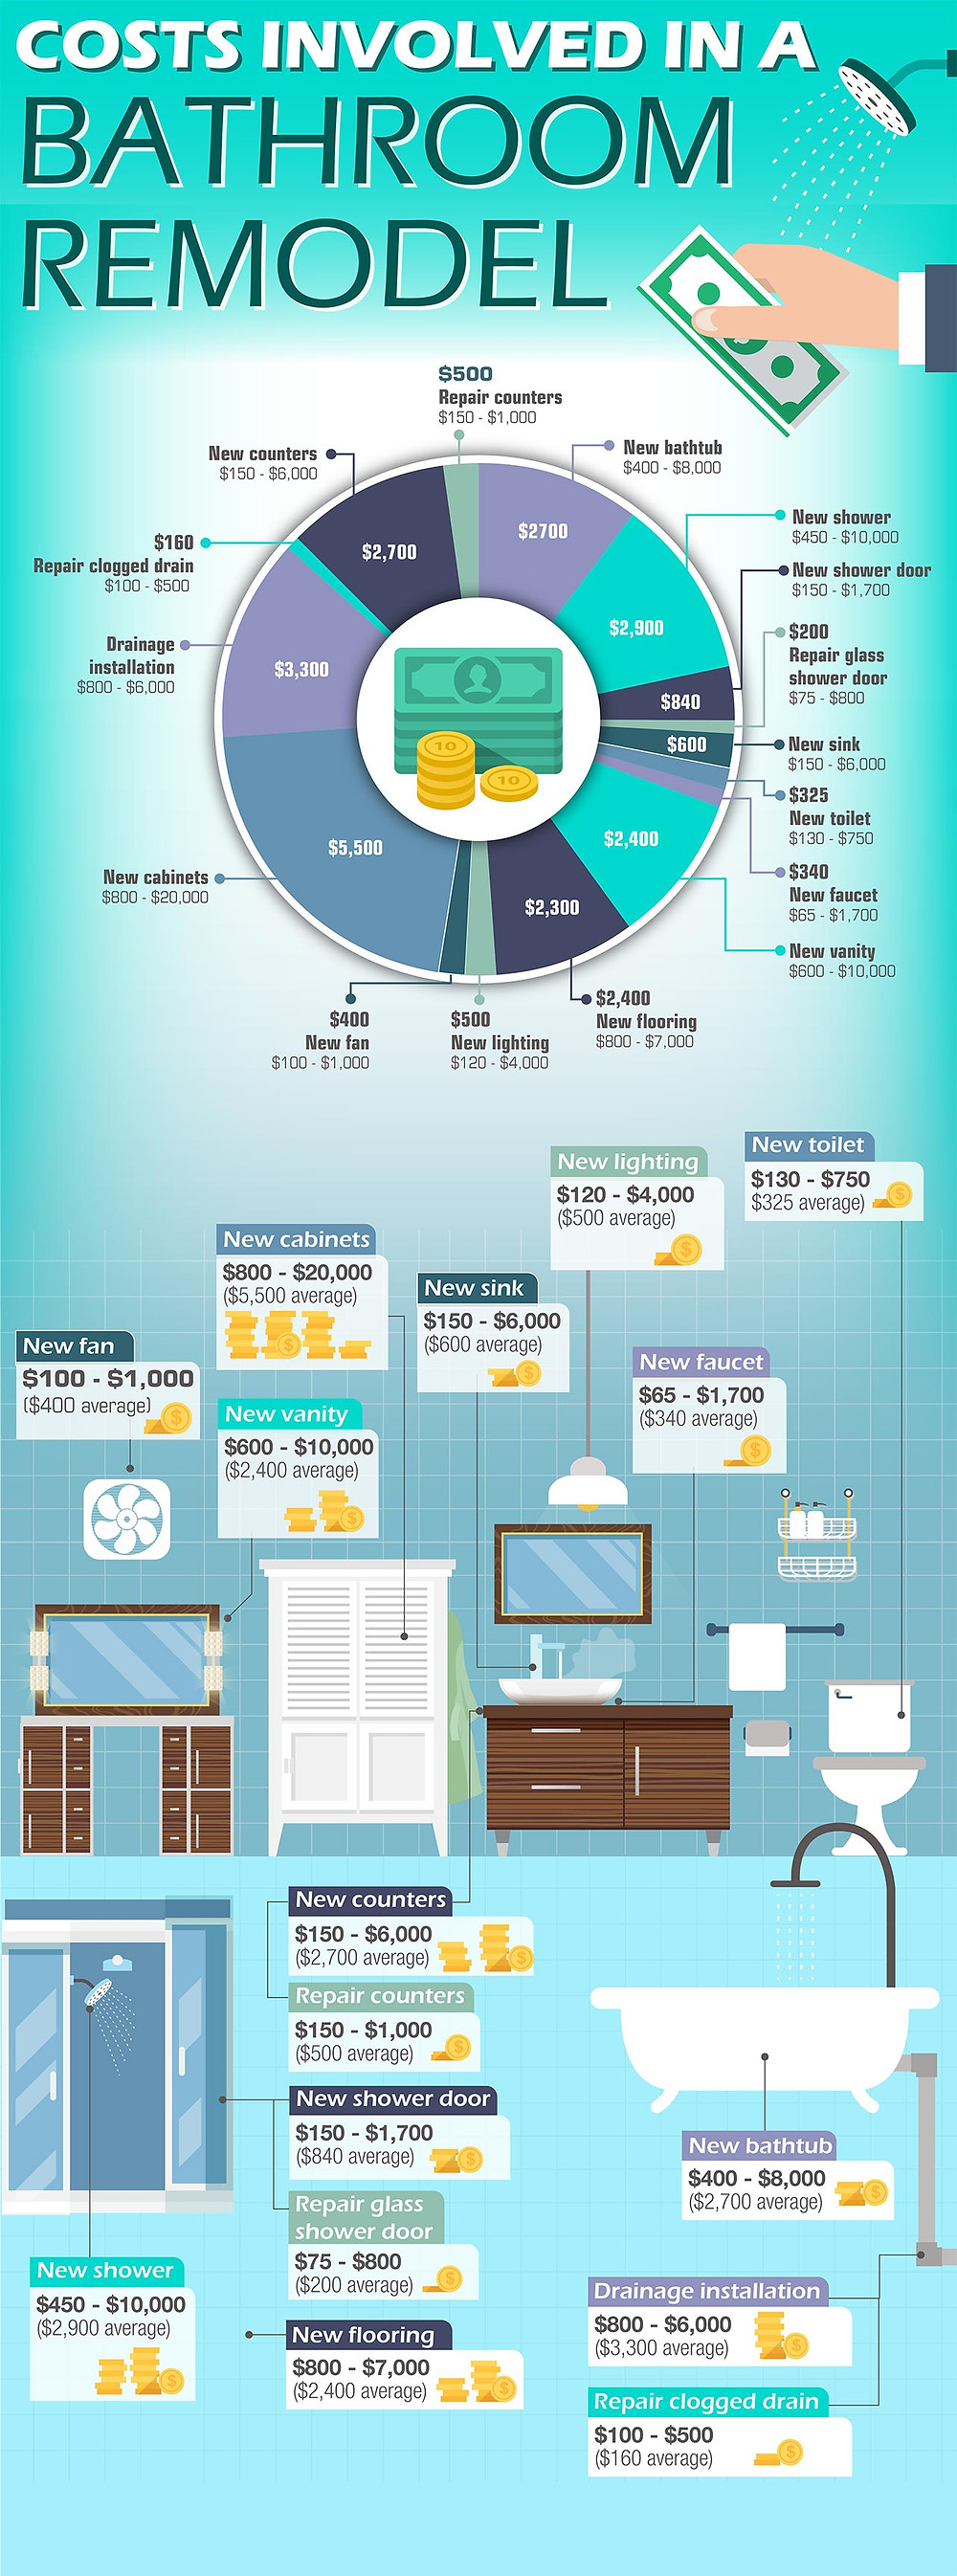 costs involved in a bathroom remodel infographic